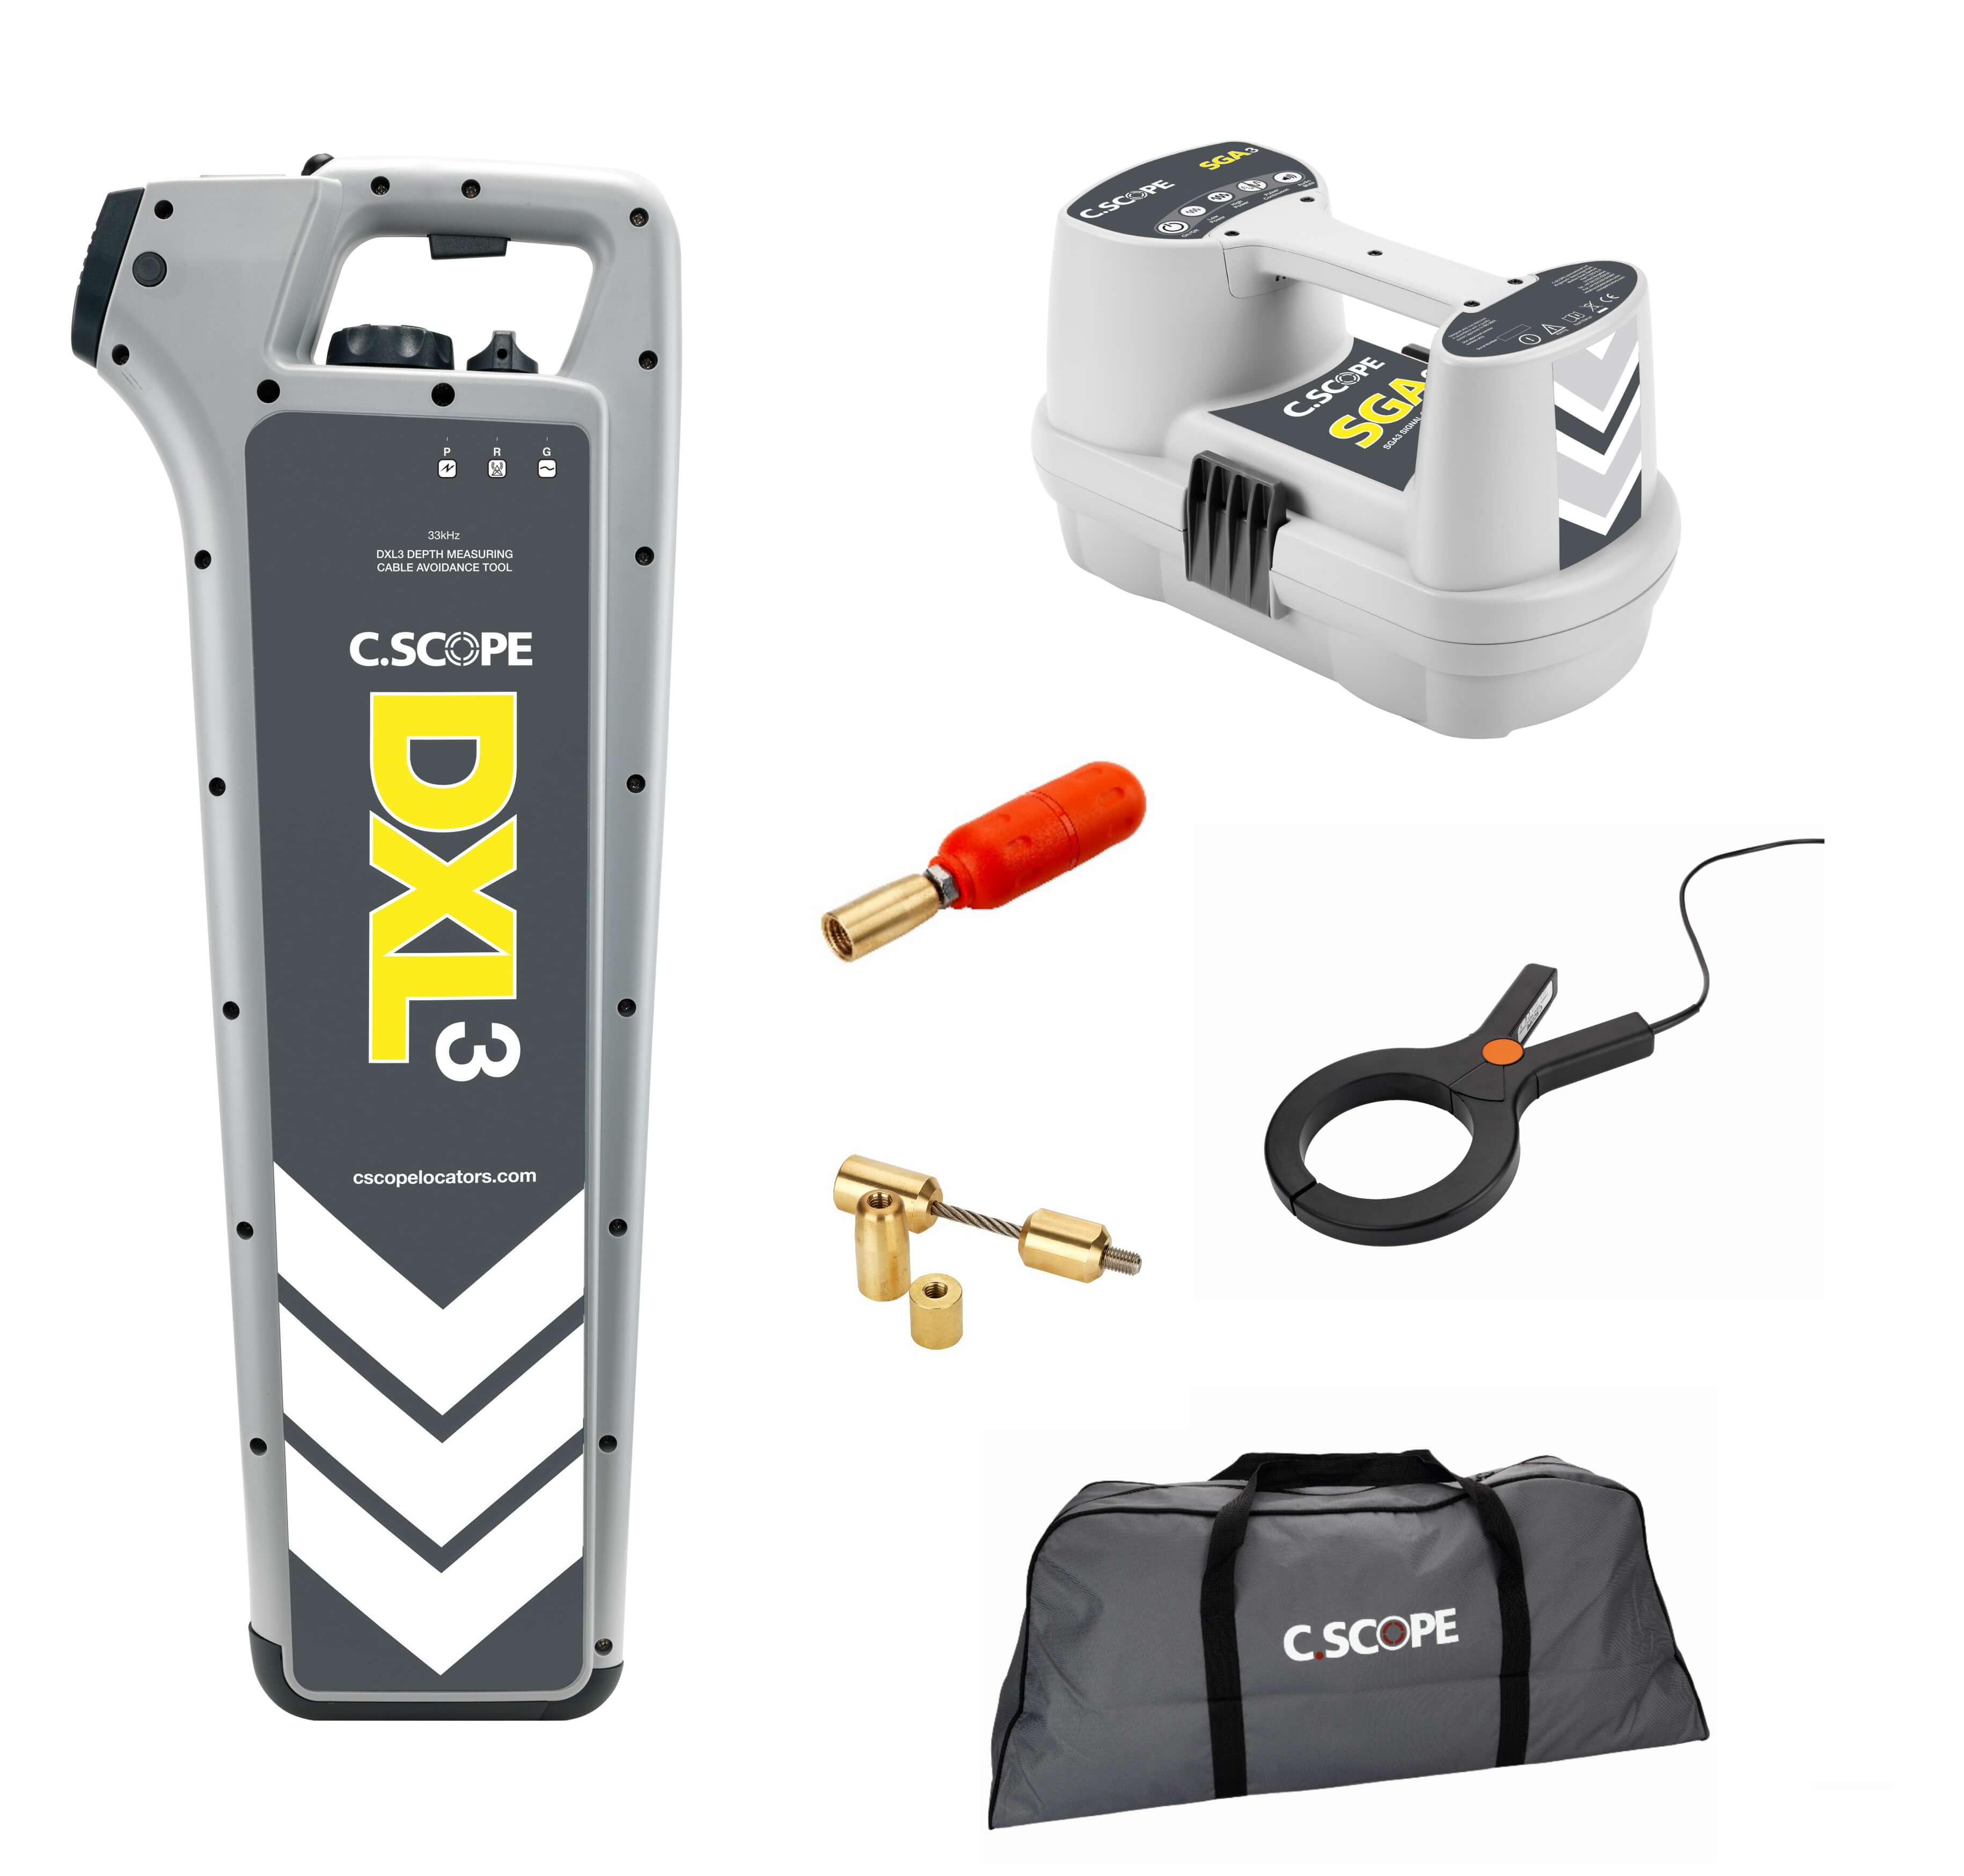 Great Value C.Scope DXL3 Cable Avoidance Tool Kit - comprises of DXL3 Depth Enabled Cable Detector bundled with popular accessories